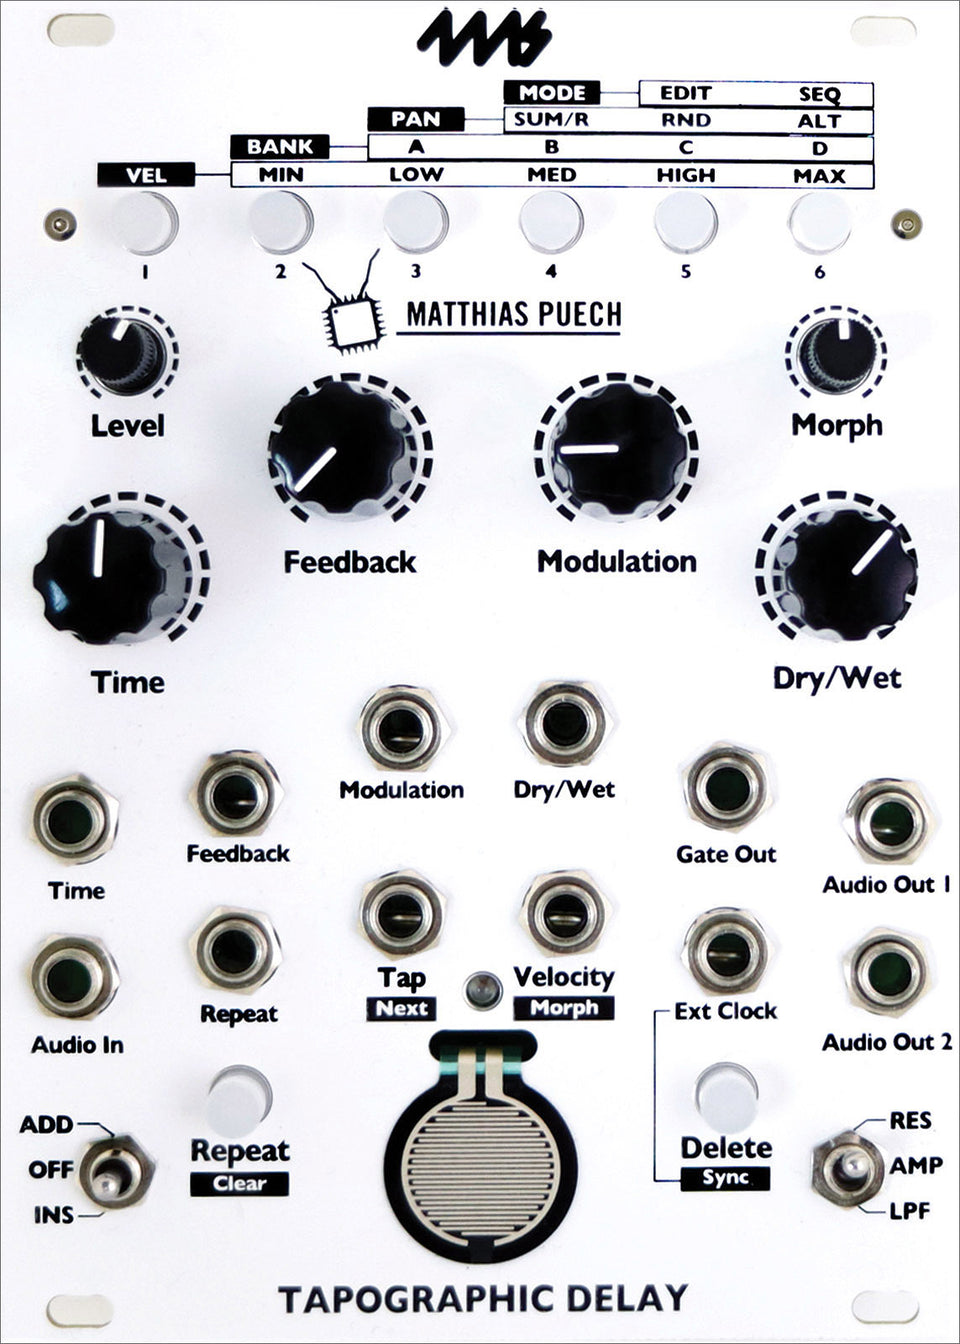 4ms TAPO Tapographic Delay Module